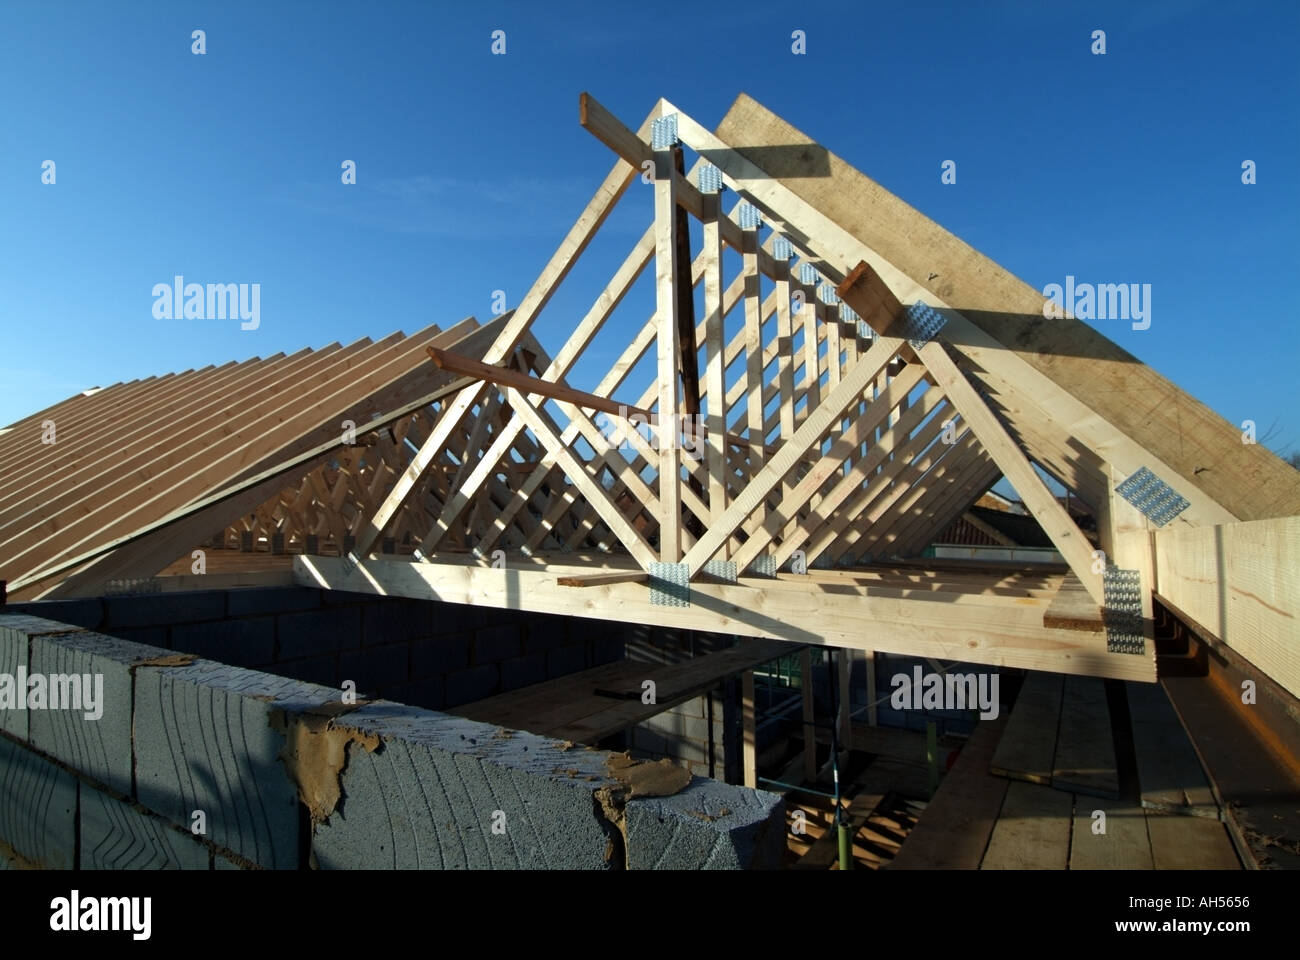 Prefabricated Roof Essex House Building Site